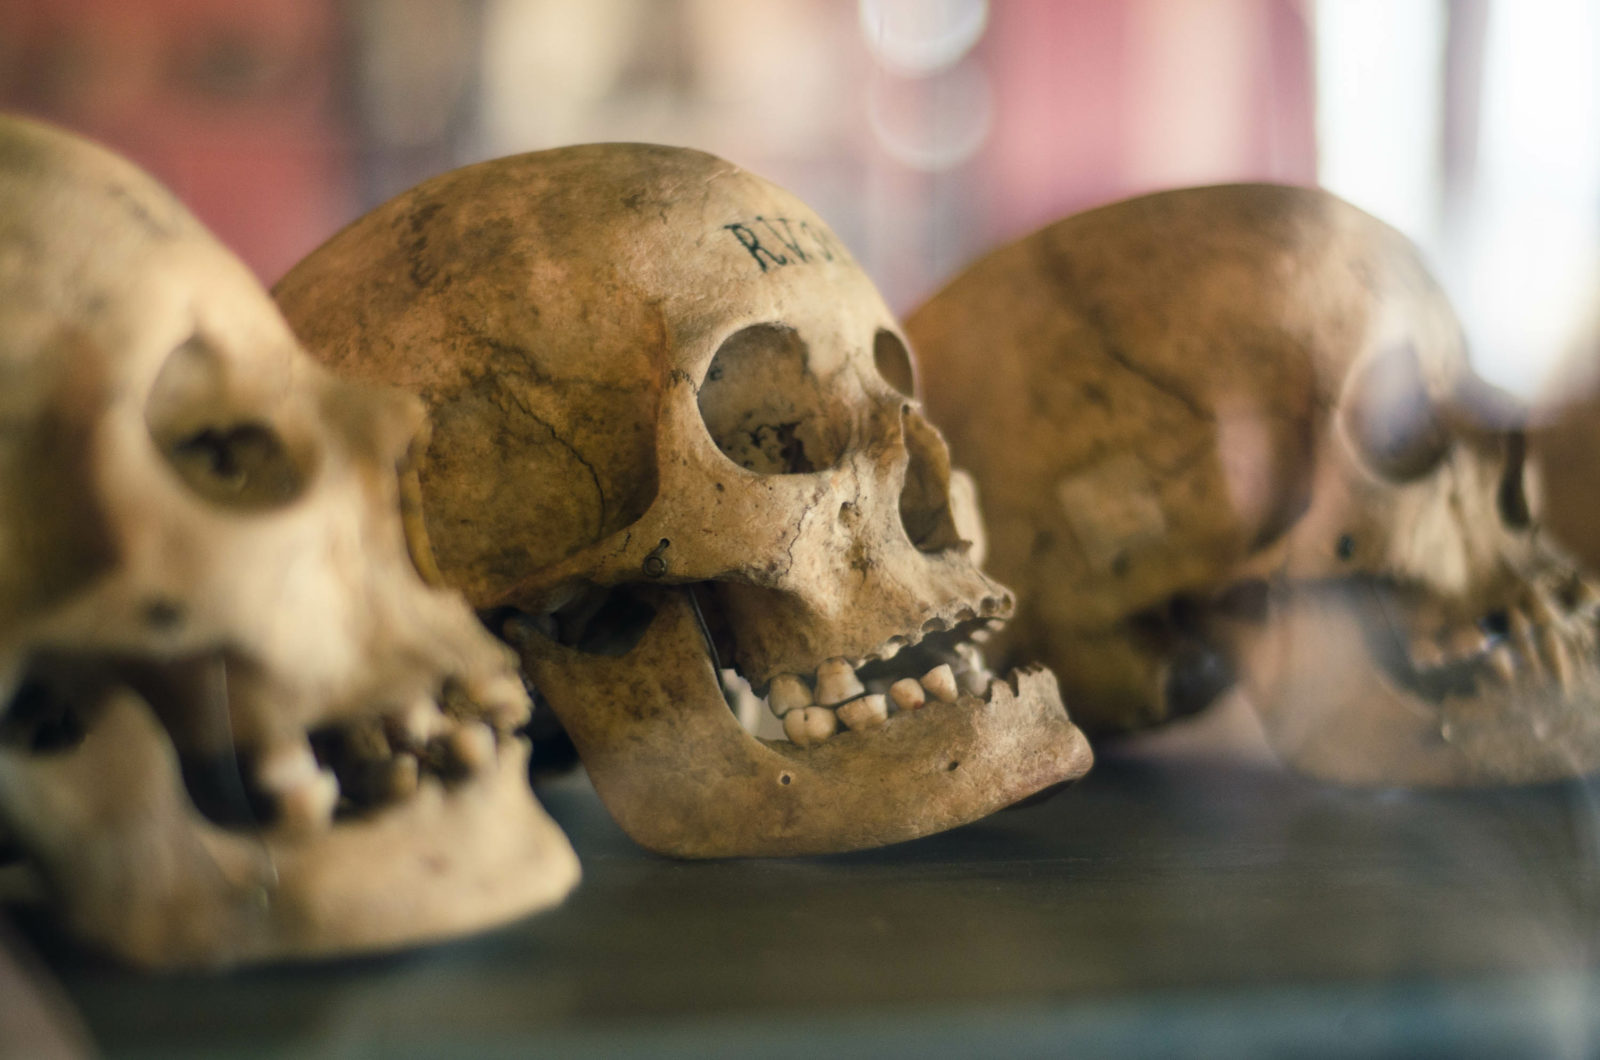 Skulls of dead people